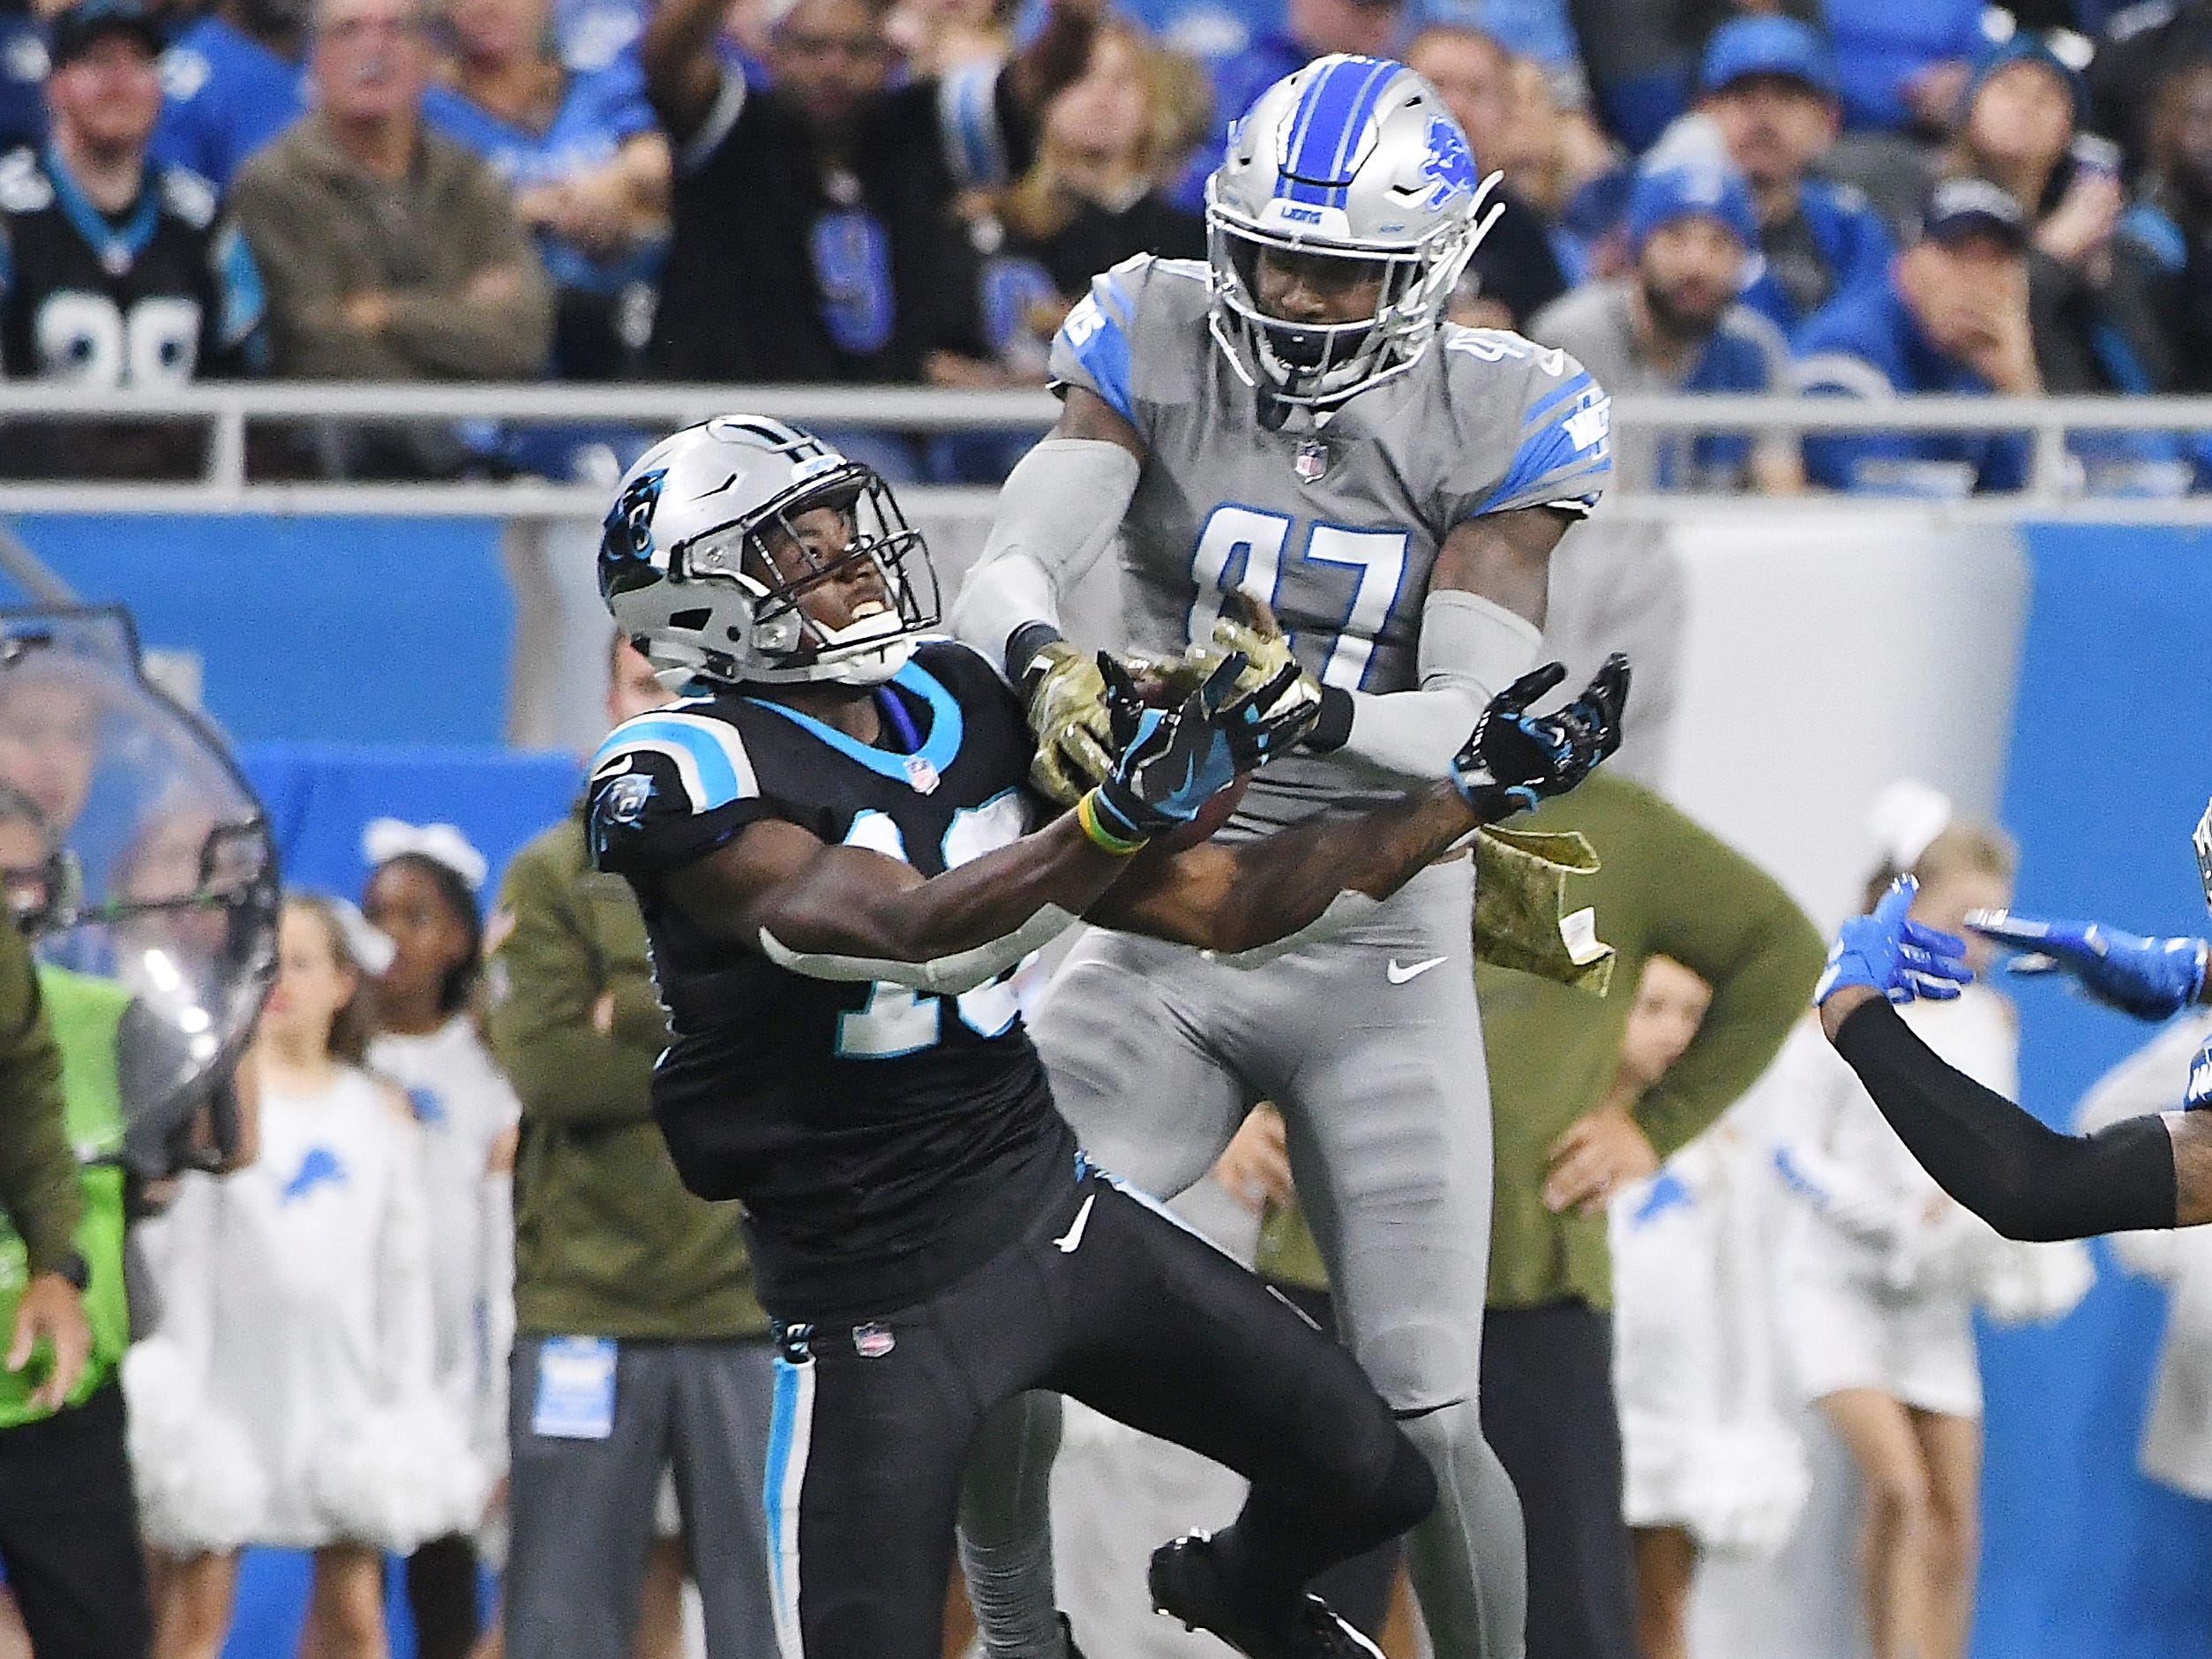 Lions defensive back Tracy Walker rips away a reception from Panthers receiver Curtis Samuel for the interception late in the second quarter.